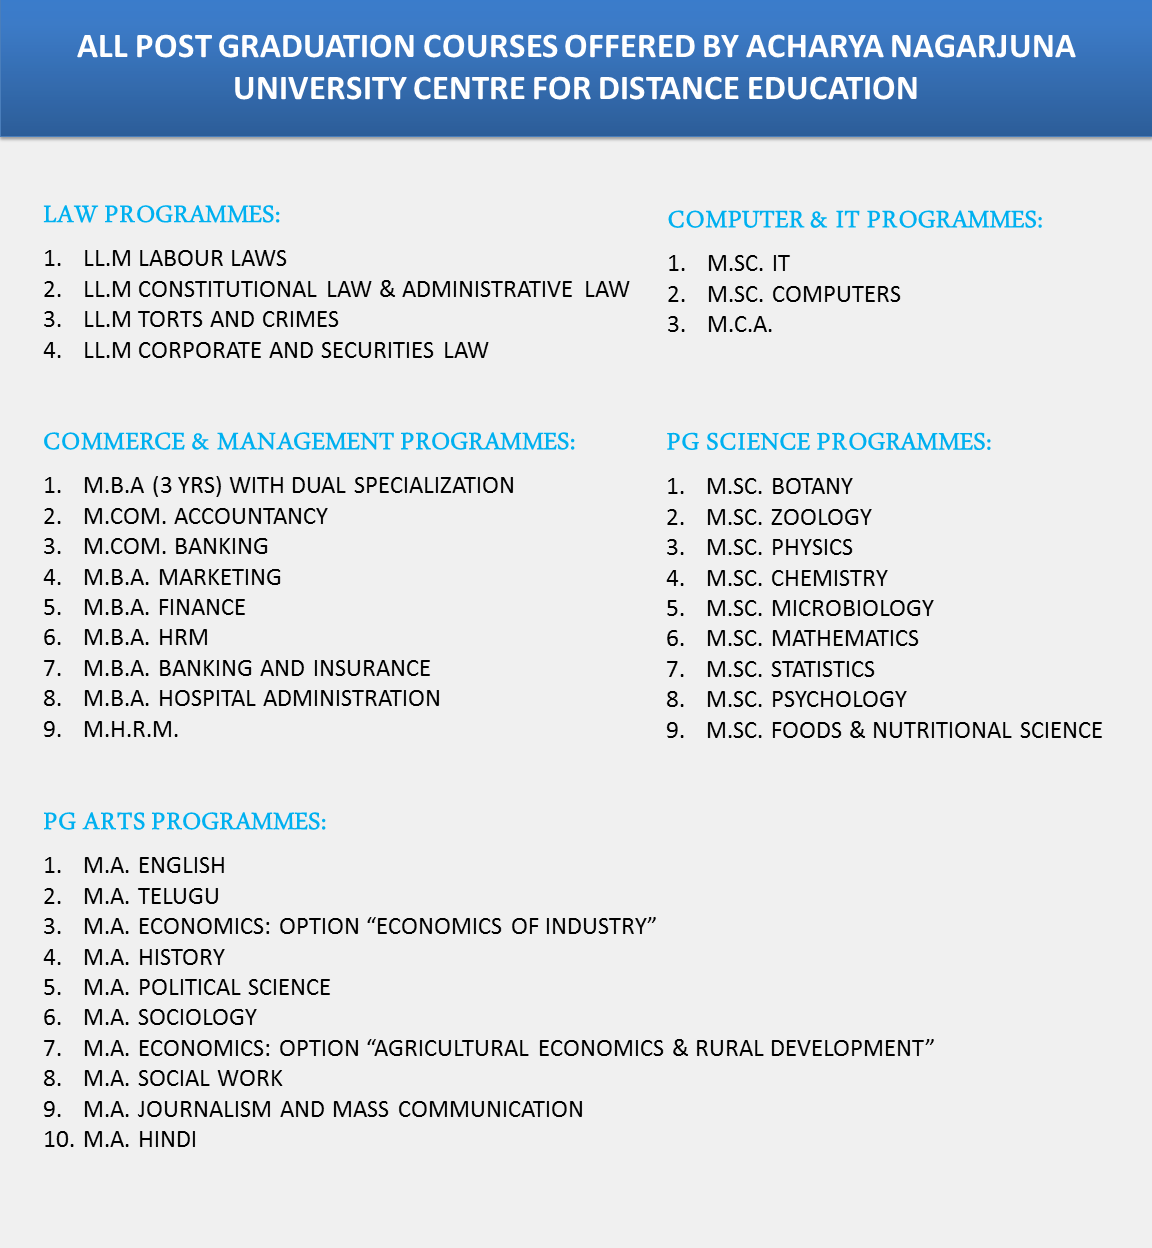 ALL POST GRADUATION COURSES OFFERED BY ACHARYA NAGARJUNA UNIVERSITY CENTRE FOR DISTANCE EDUCATION